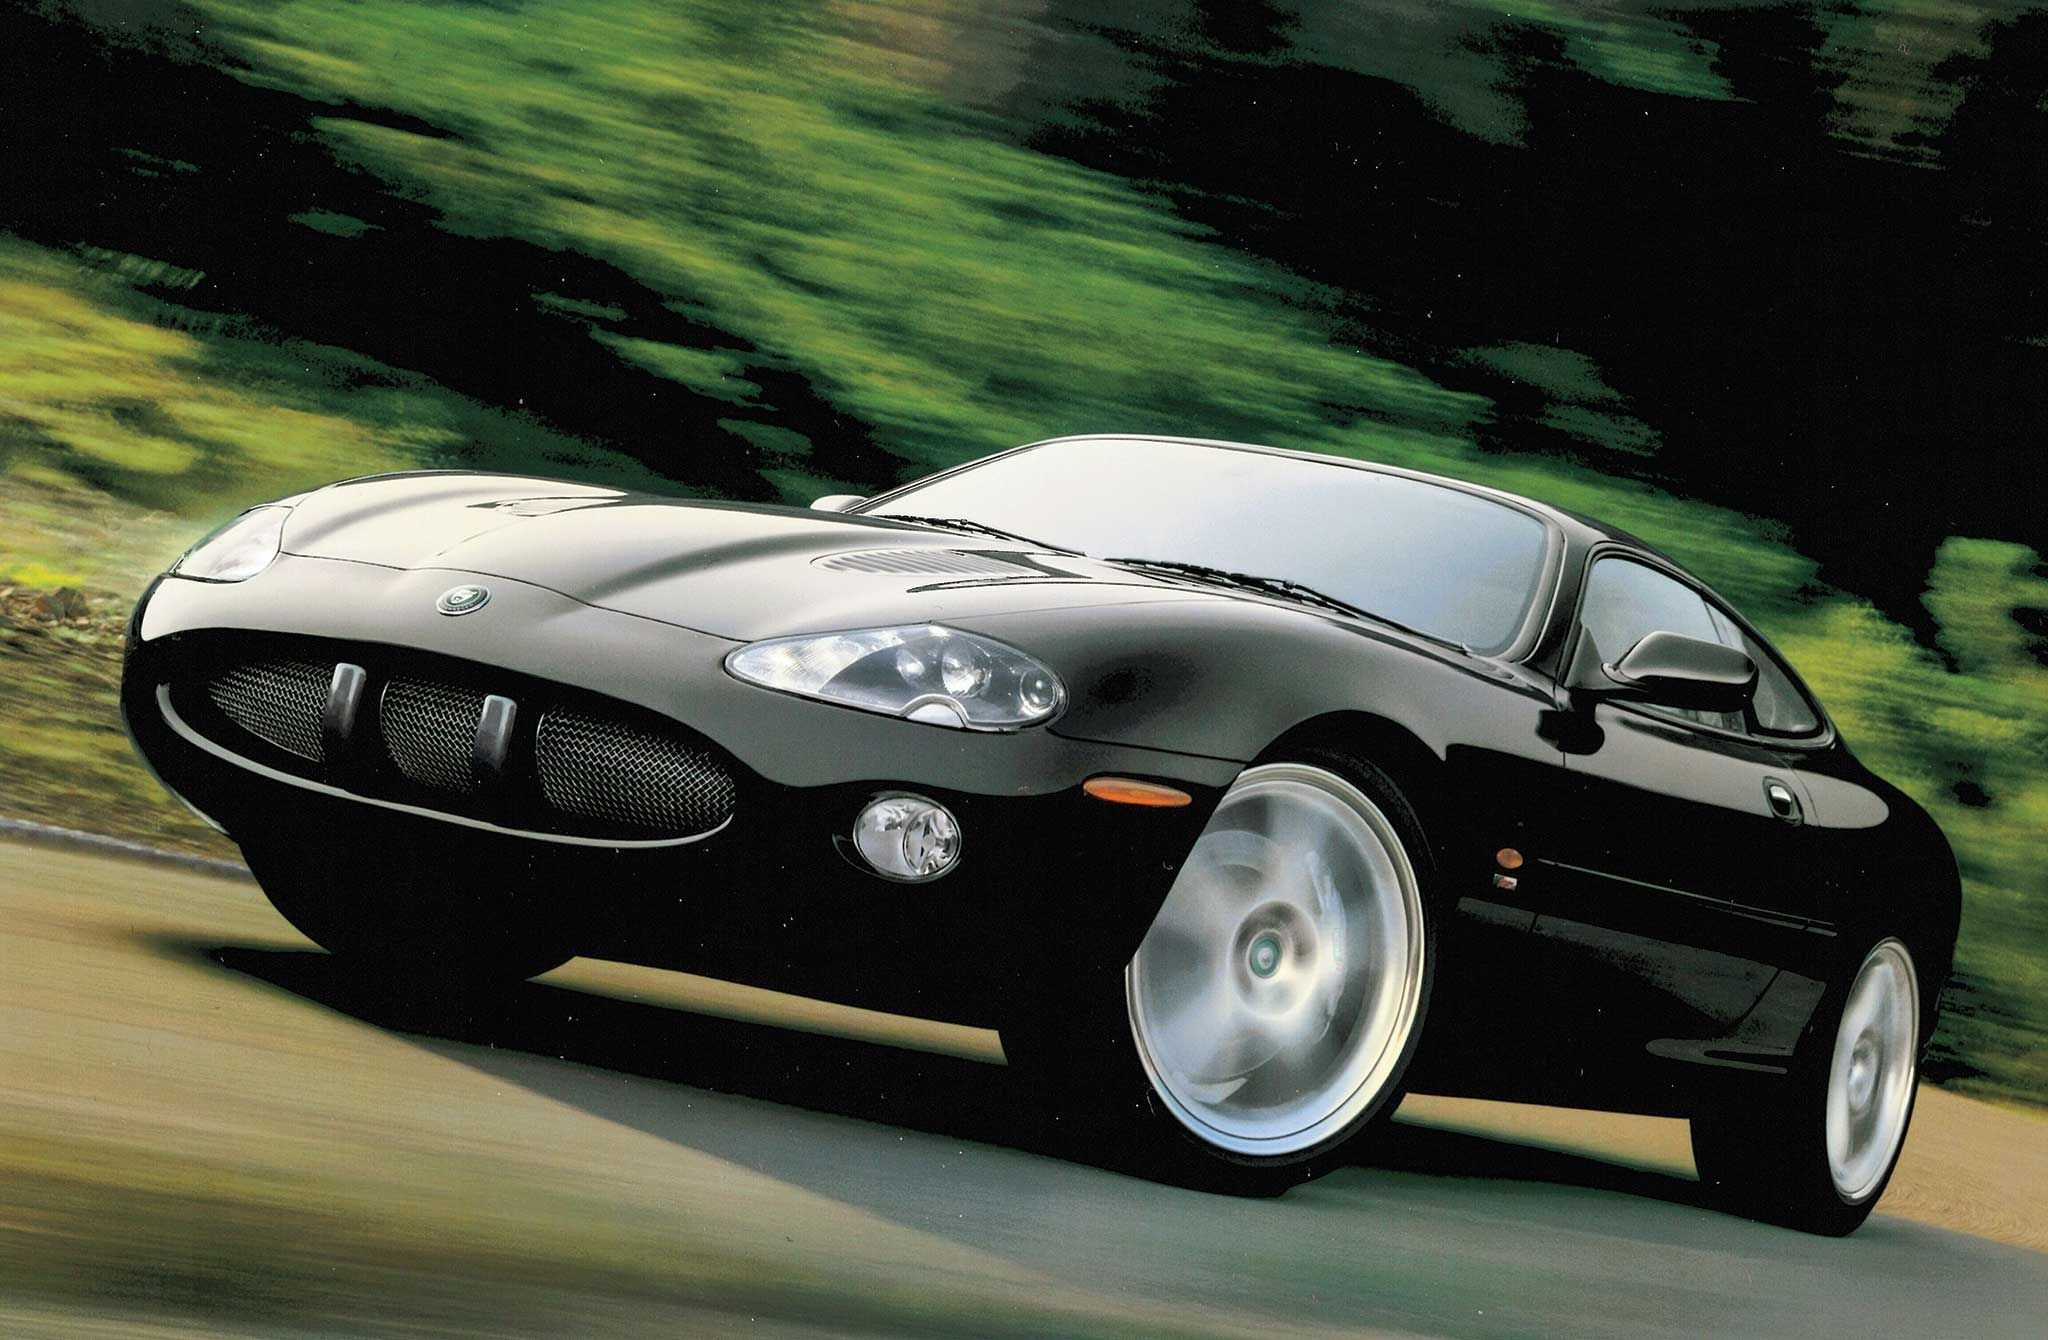 breaking news jaguar xk8 has mechanical issues bestride. Black Bedroom Furniture Sets. Home Design Ideas